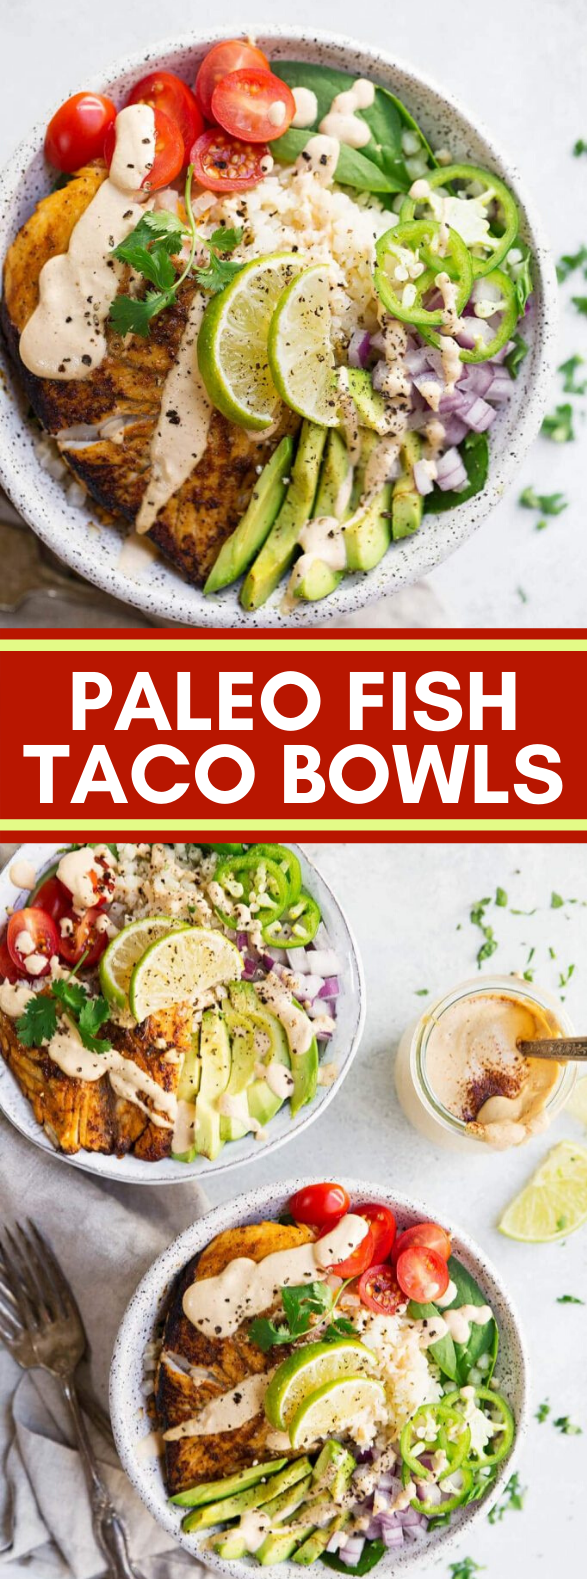 PALEO FISH TACO BOWLS #diet #veggies